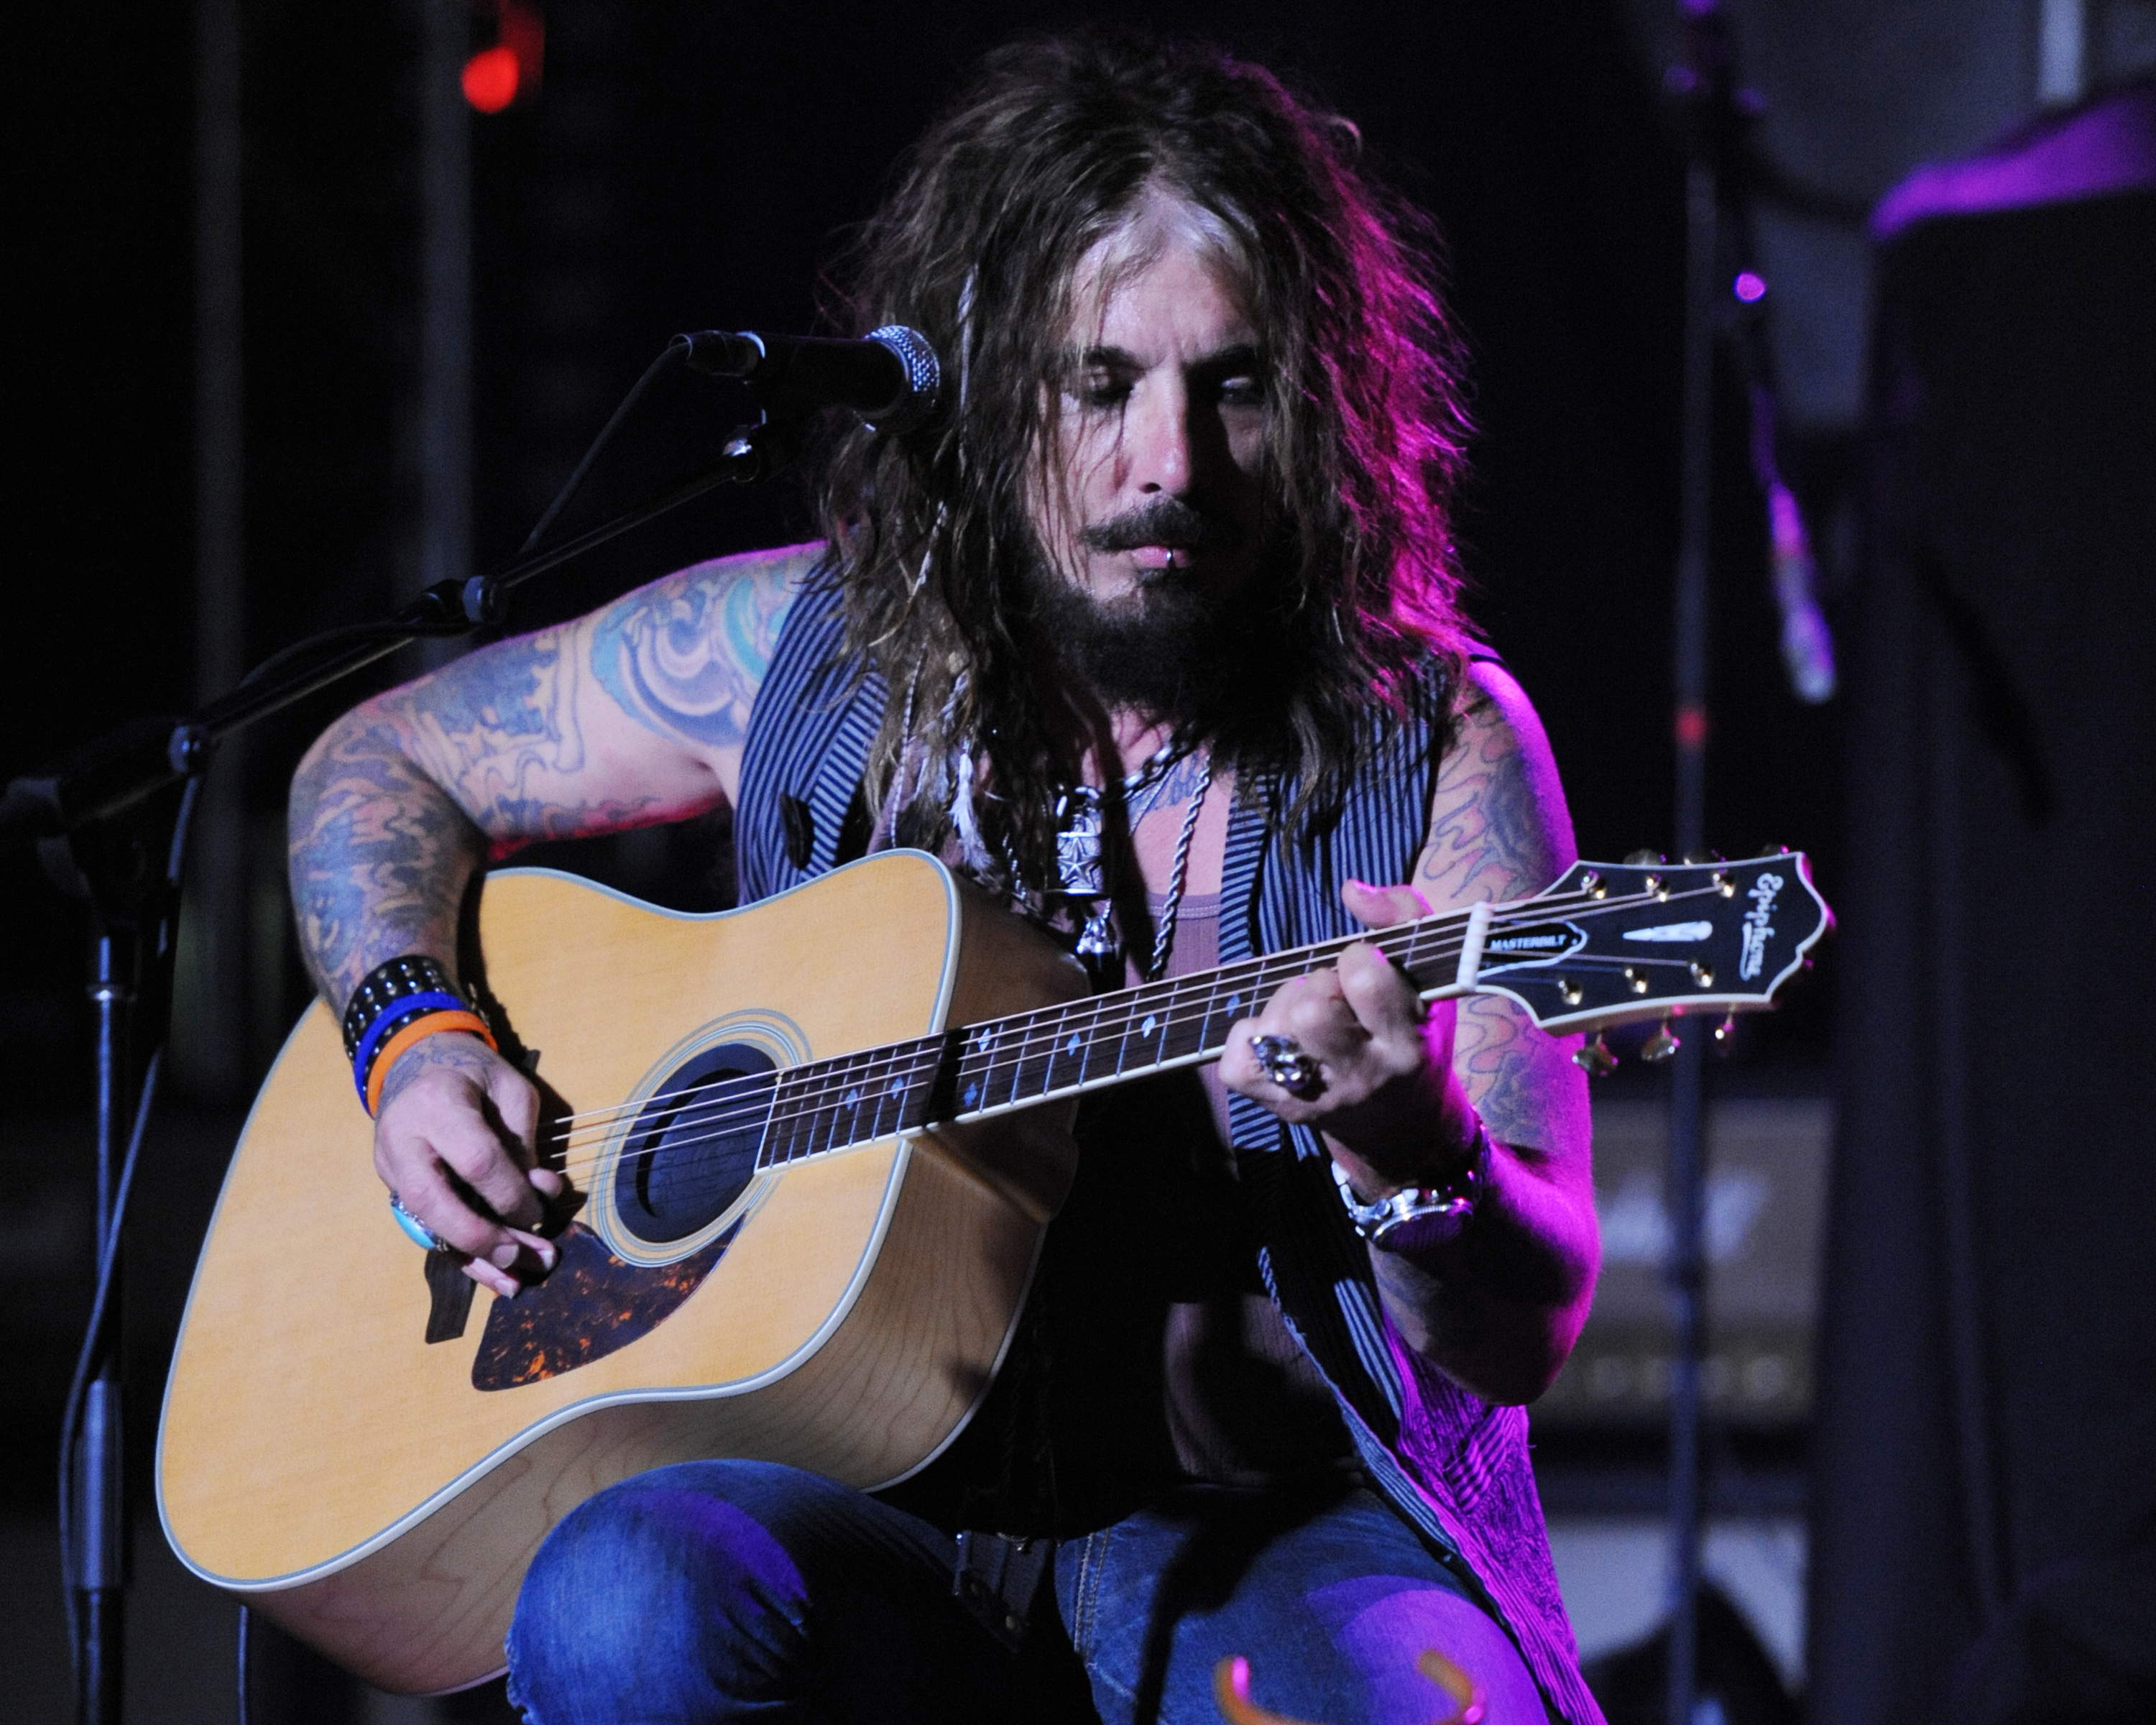 FORT LAUDERDALE, FL - JULY 31: John Corabi performs at Revolution on July 31, 2011 in Fort Lauderdale, Florida. (Photo by Lar